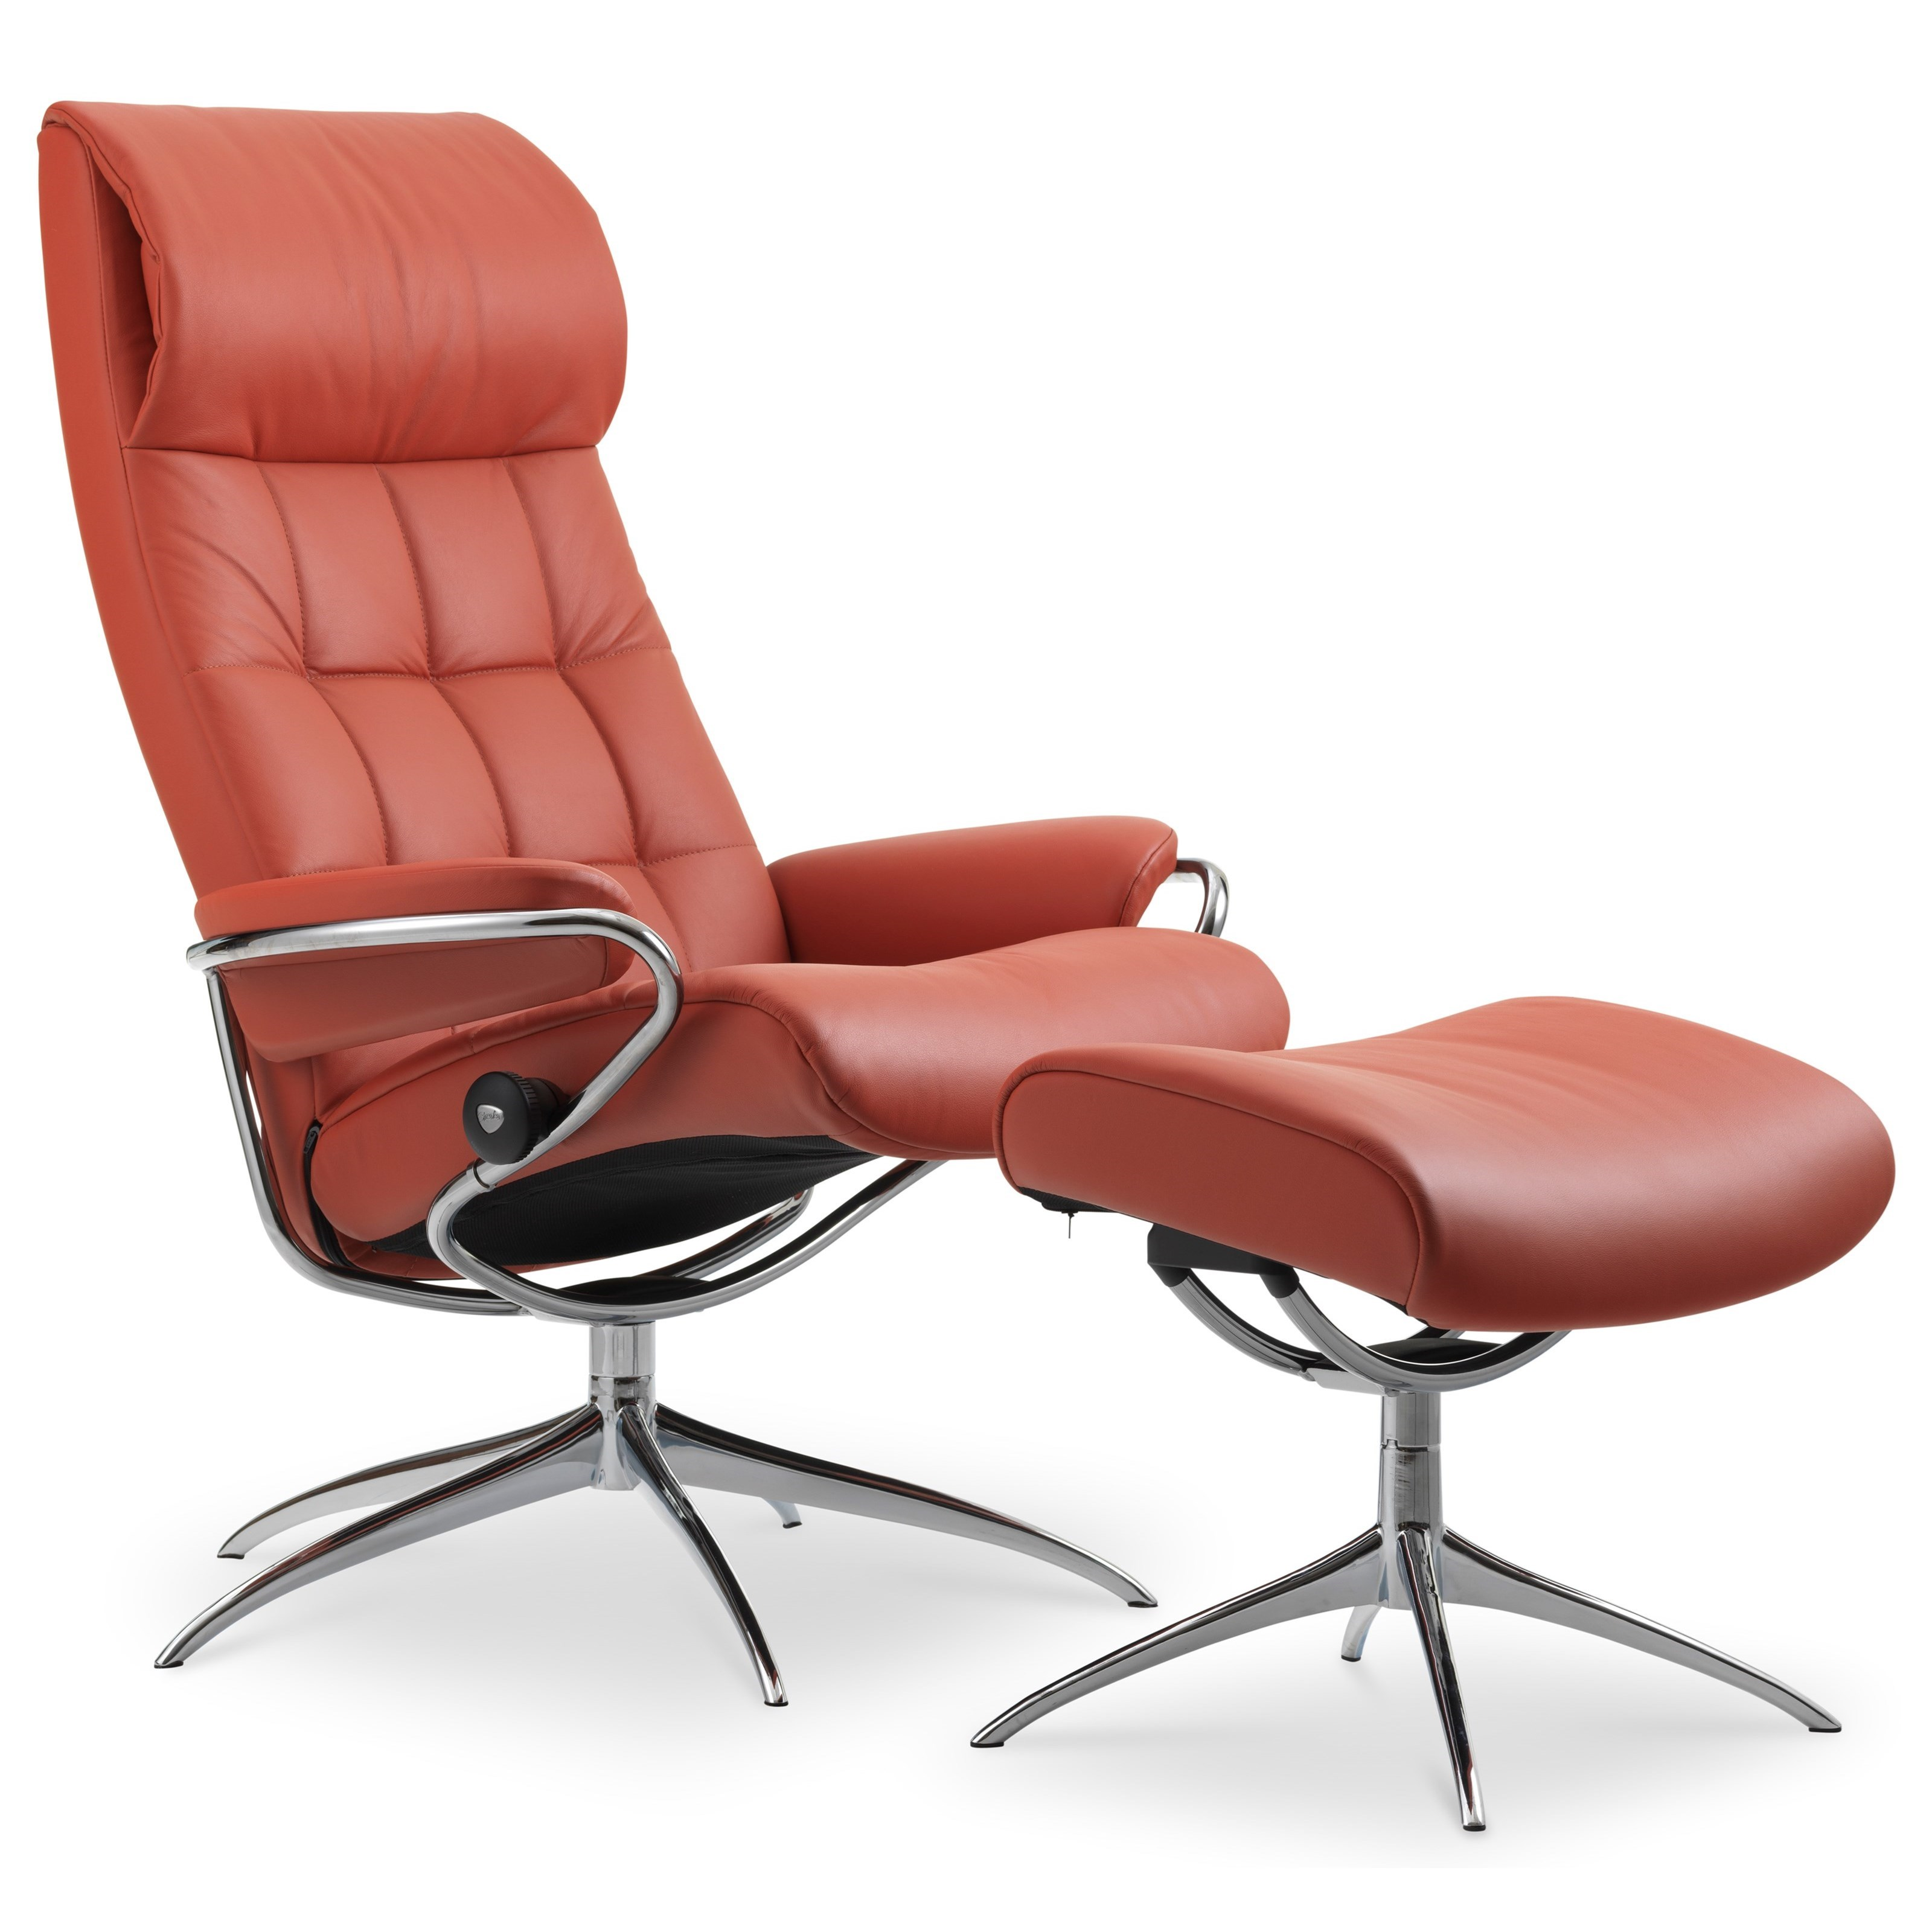 London High Back Recliner and Ottoman by Stressless at Virginia Furniture Market